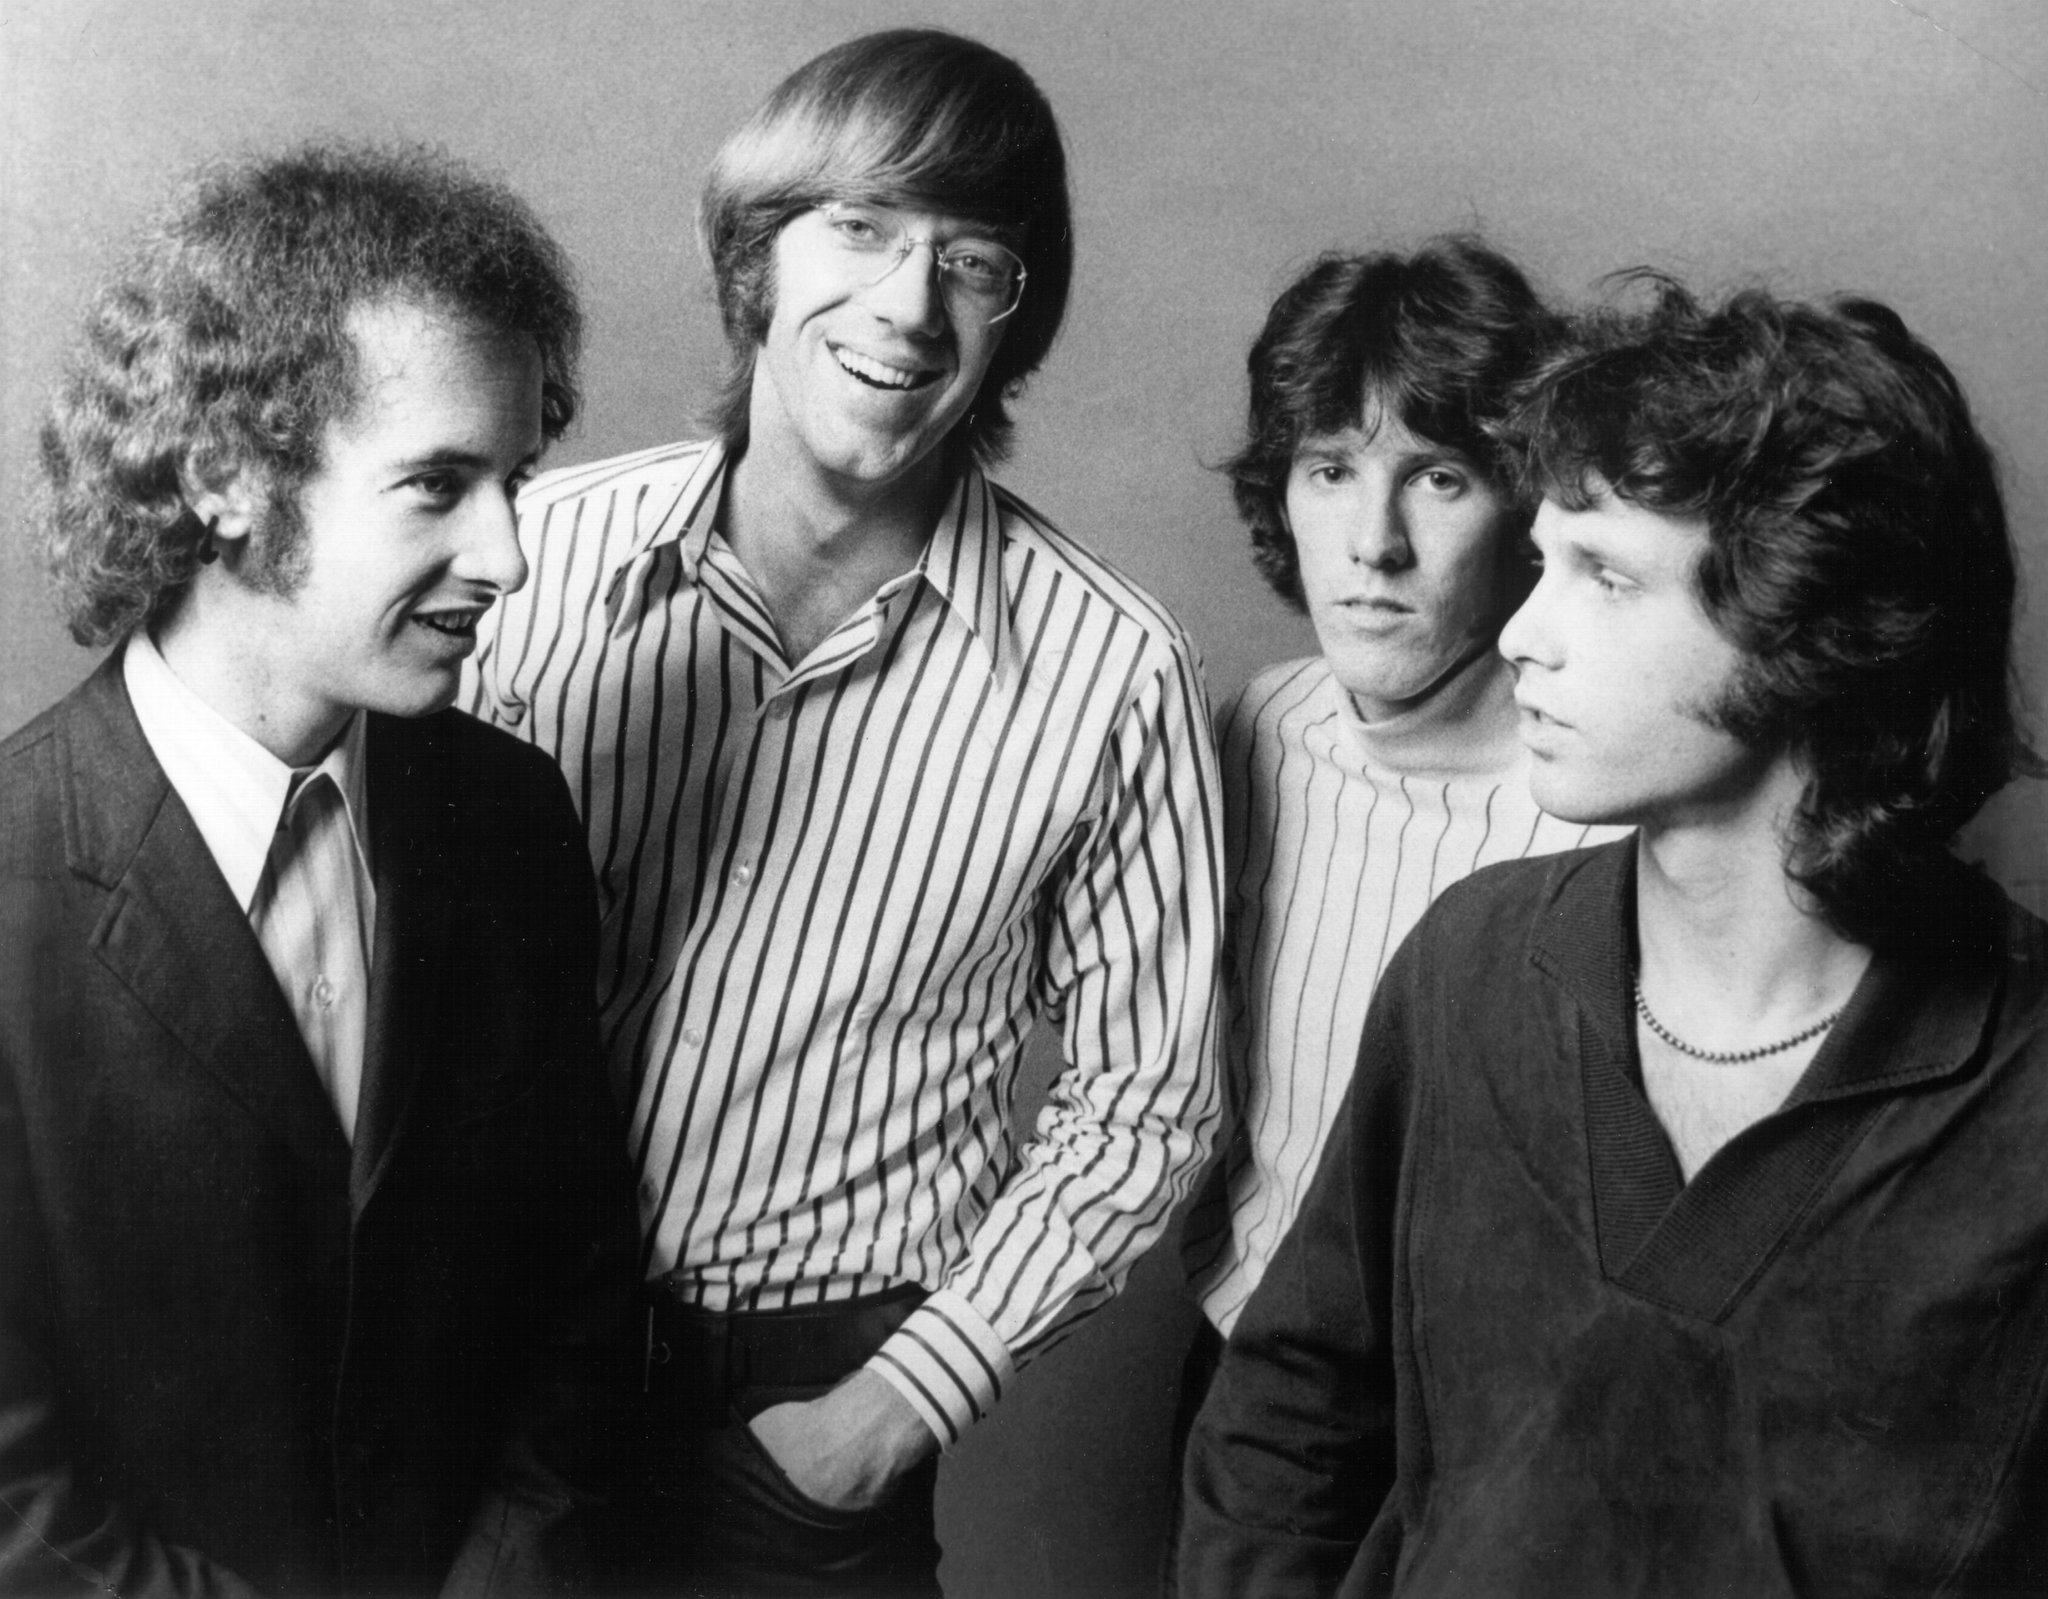 An image of the rock band The Doors taken in 1967.